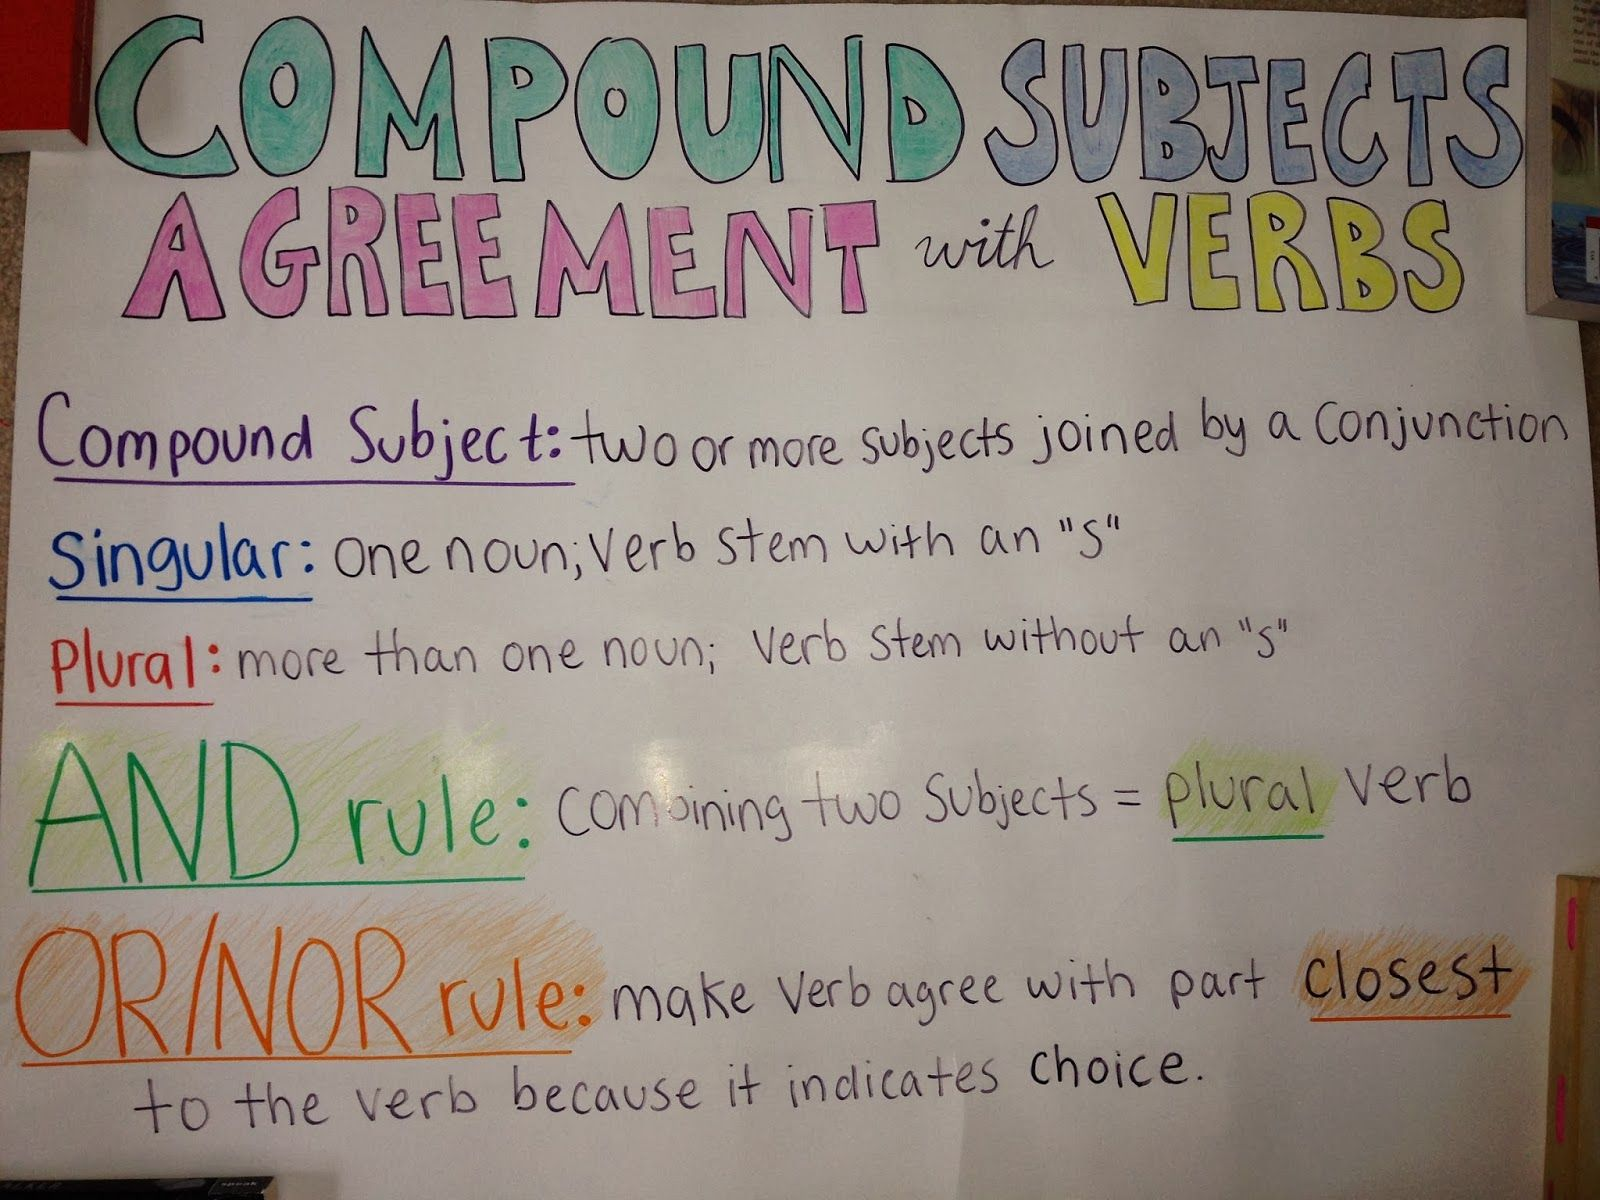 compound subjects and agreement with verbs lesson plan students make silly sentences  [ 1600 x 1200 Pixel ]